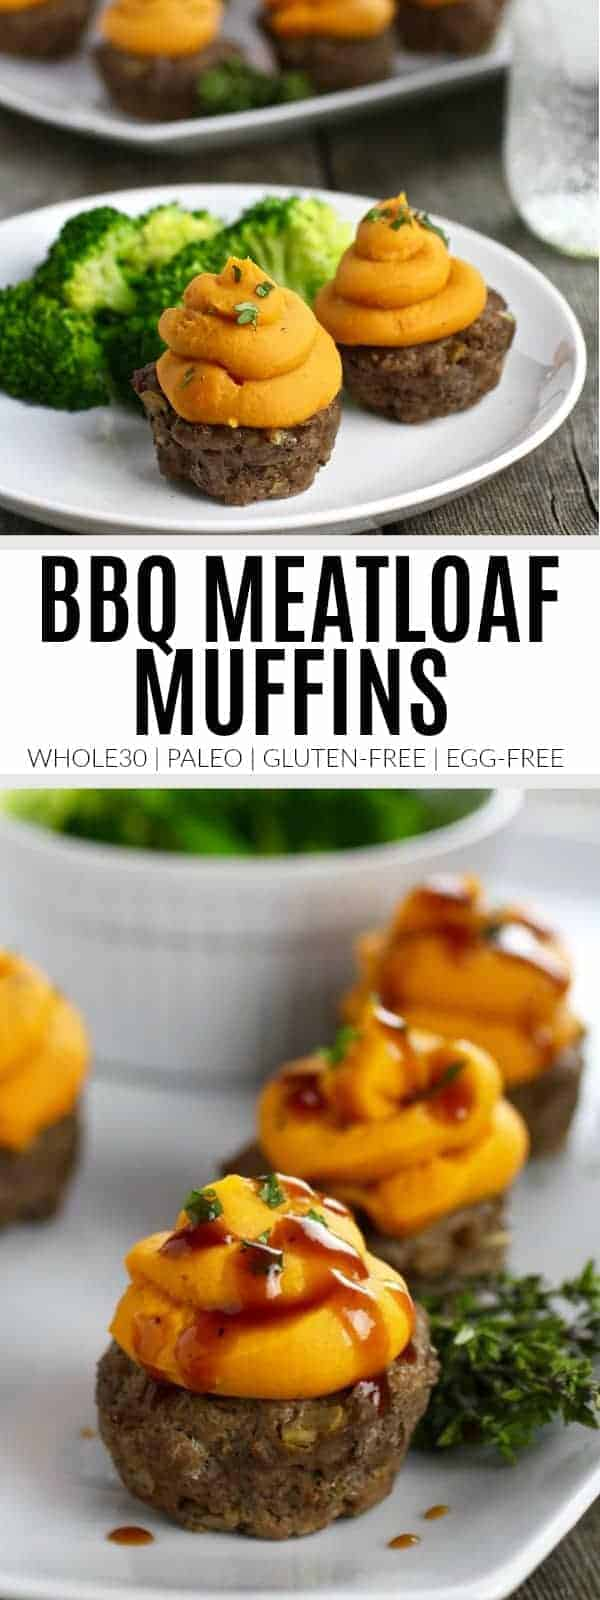 pinterest image for BBQ Meatloaf Muffins with Sweet Potato Topping